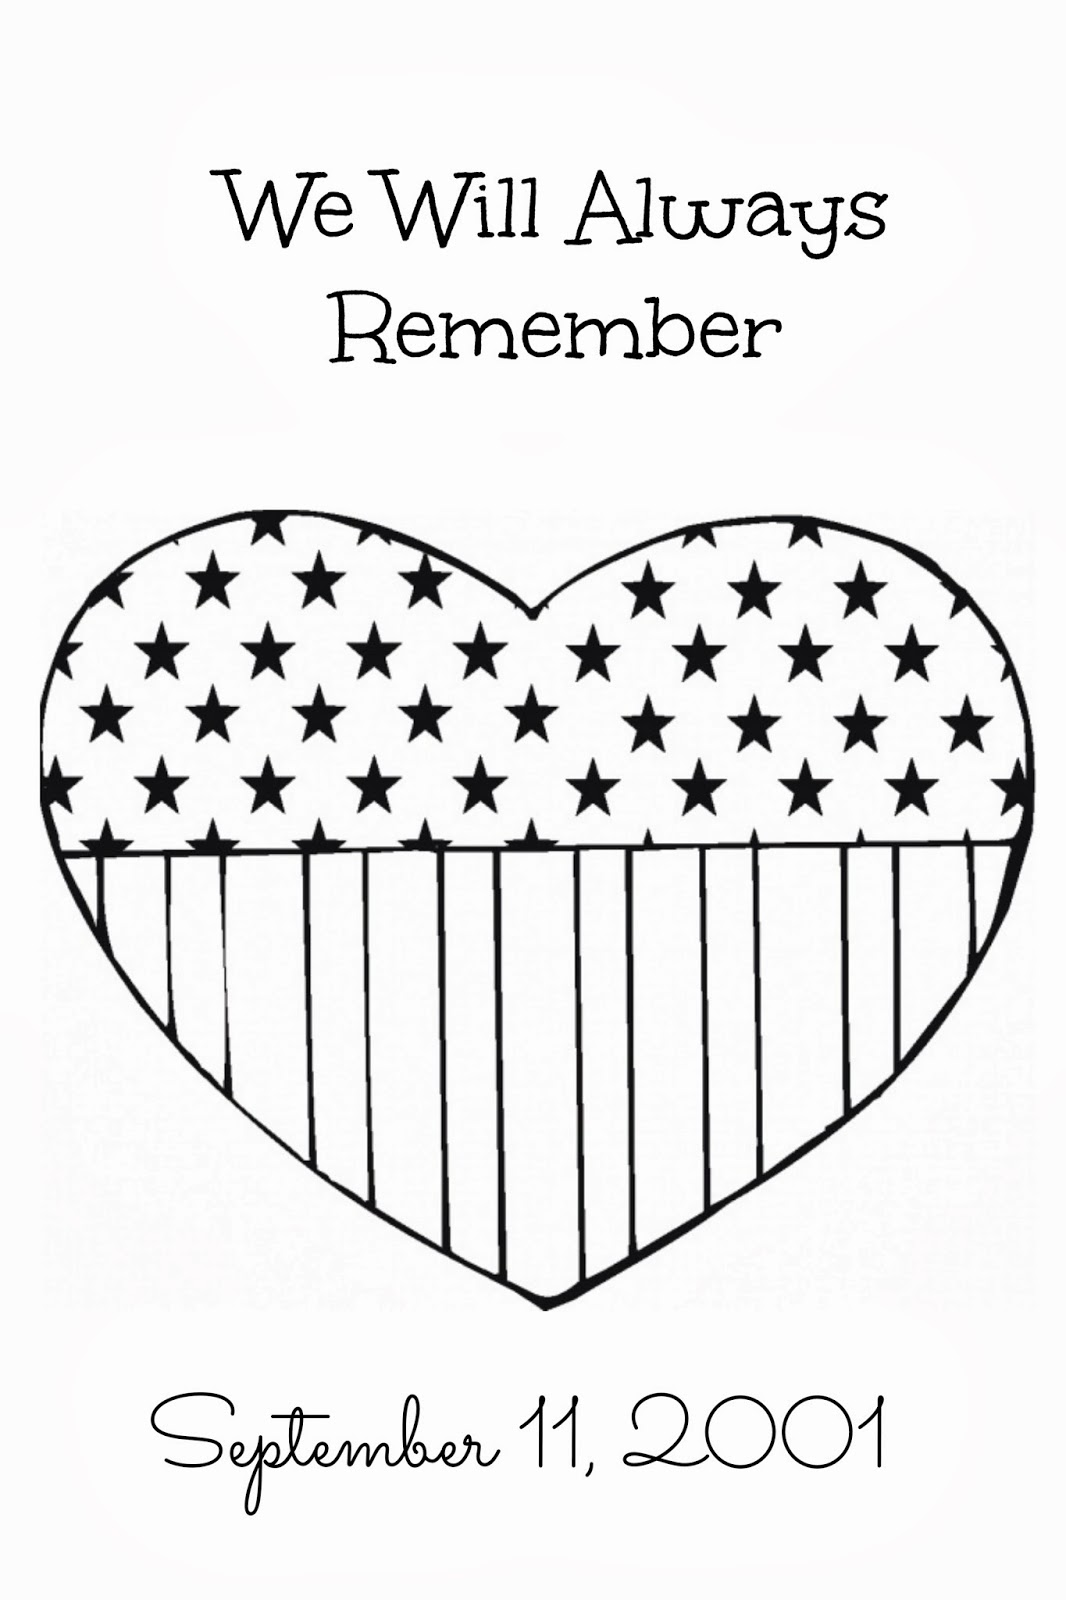 9 11 coloring sheets 911 coloring pages 91101 memorial rememberance 9 coloring sheets 11